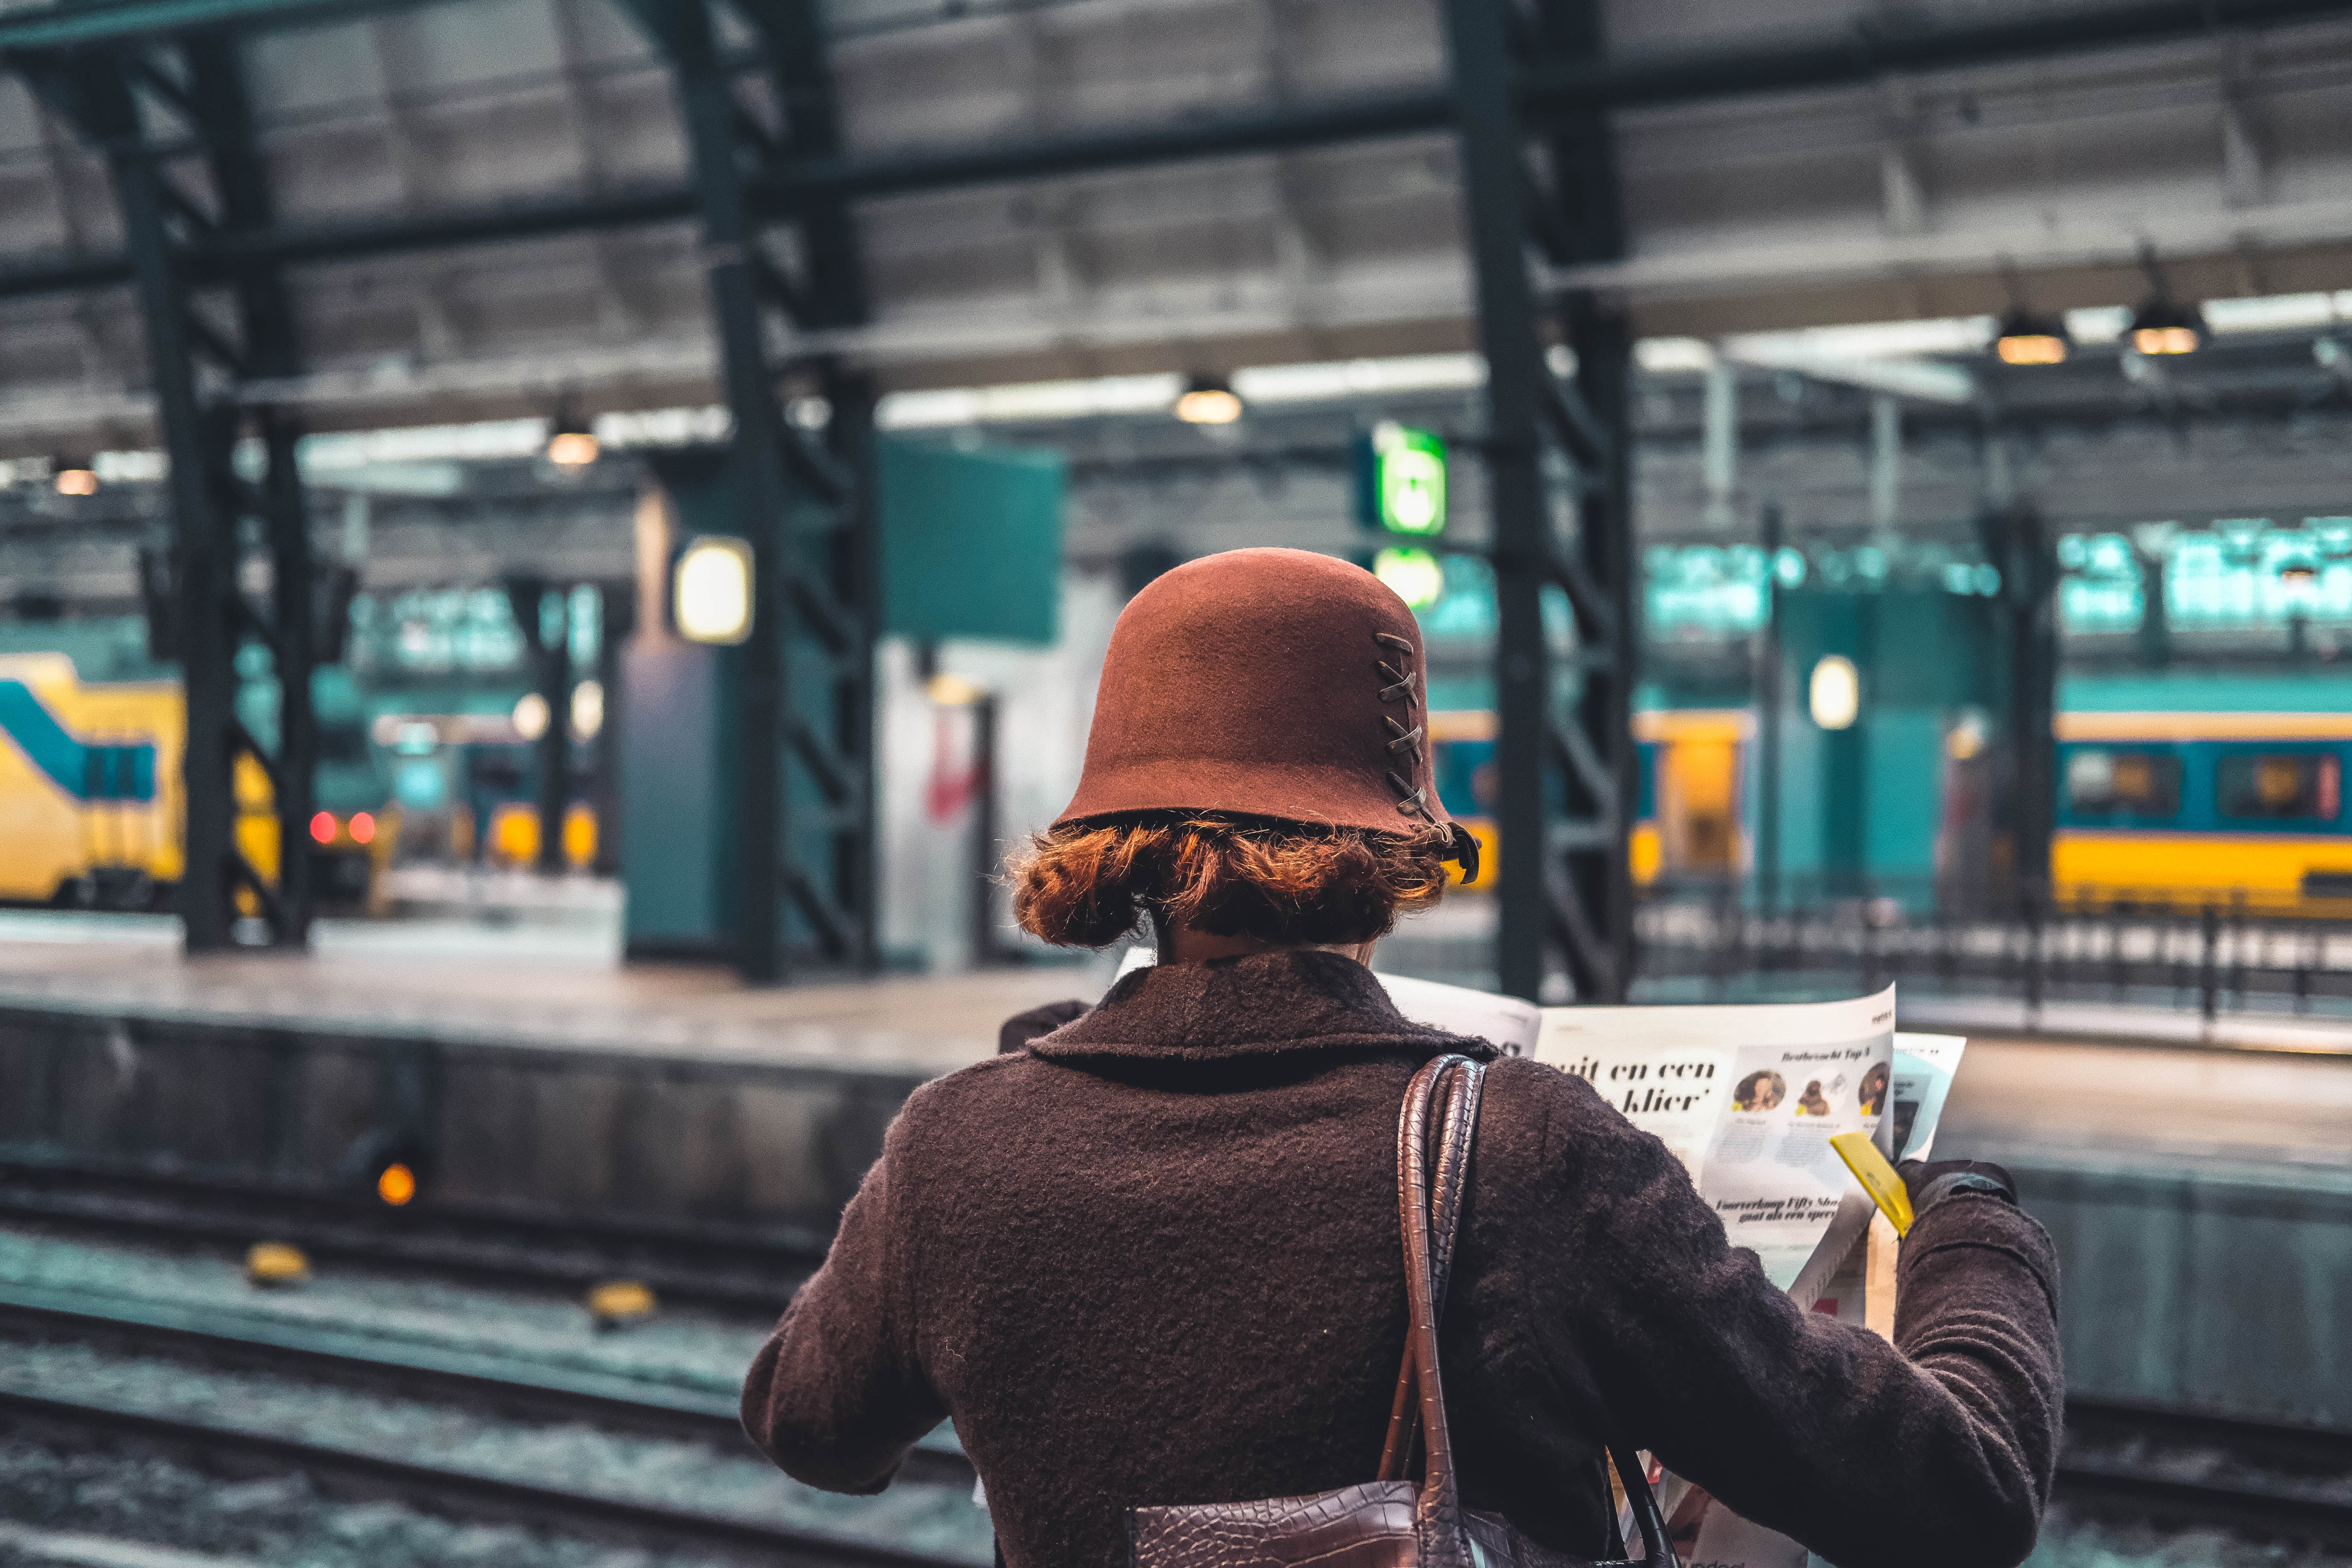 Picture of a newspaper woman reading at the platform